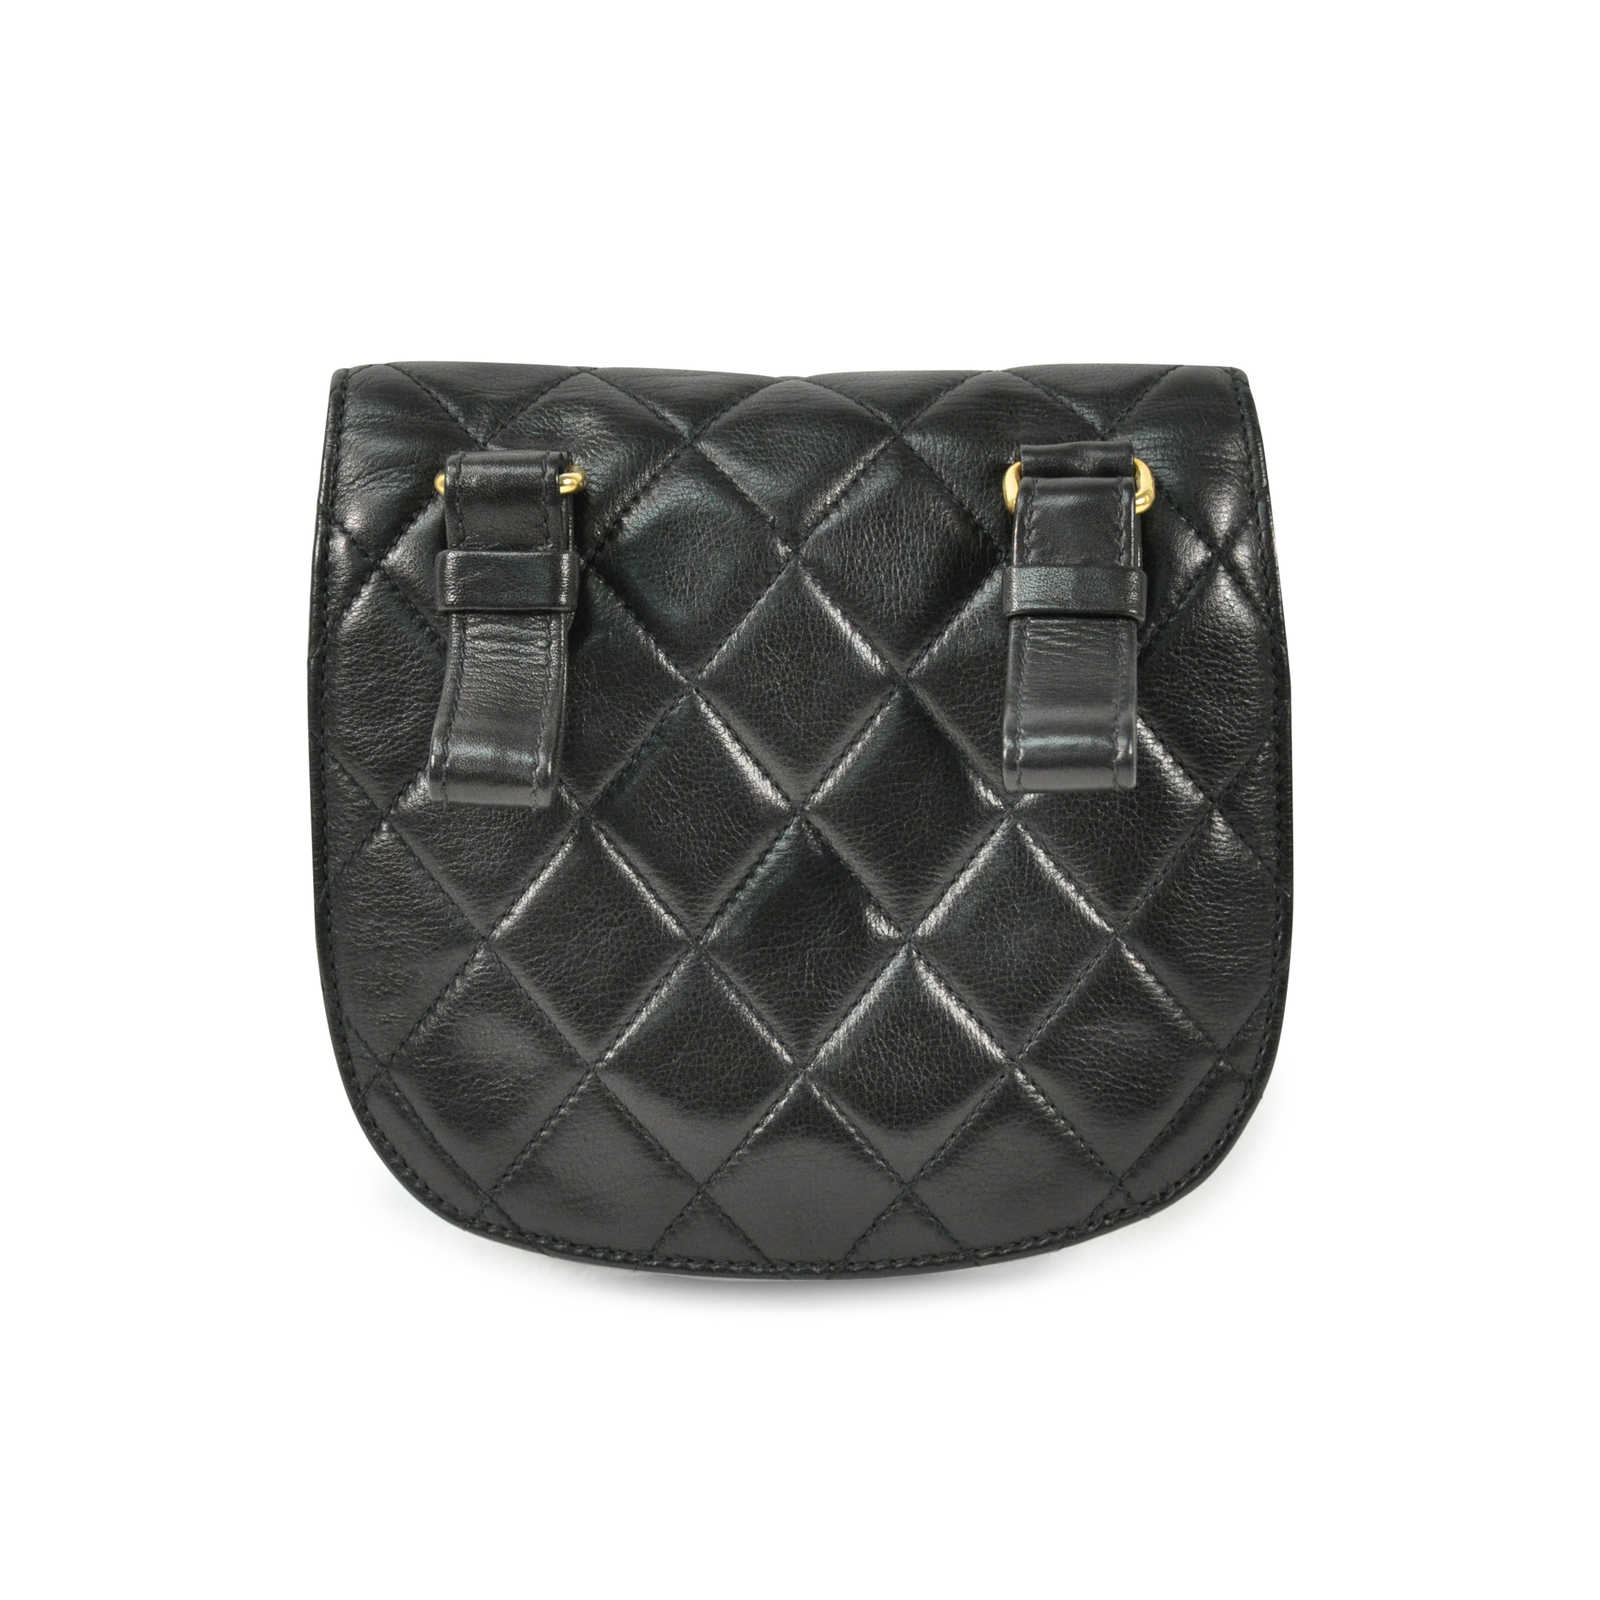 6f8d15cea914 ... Authentic Vintage Chanel Quilted Belt Bag (PSS-200-00502) - Thumbnail 1  ...